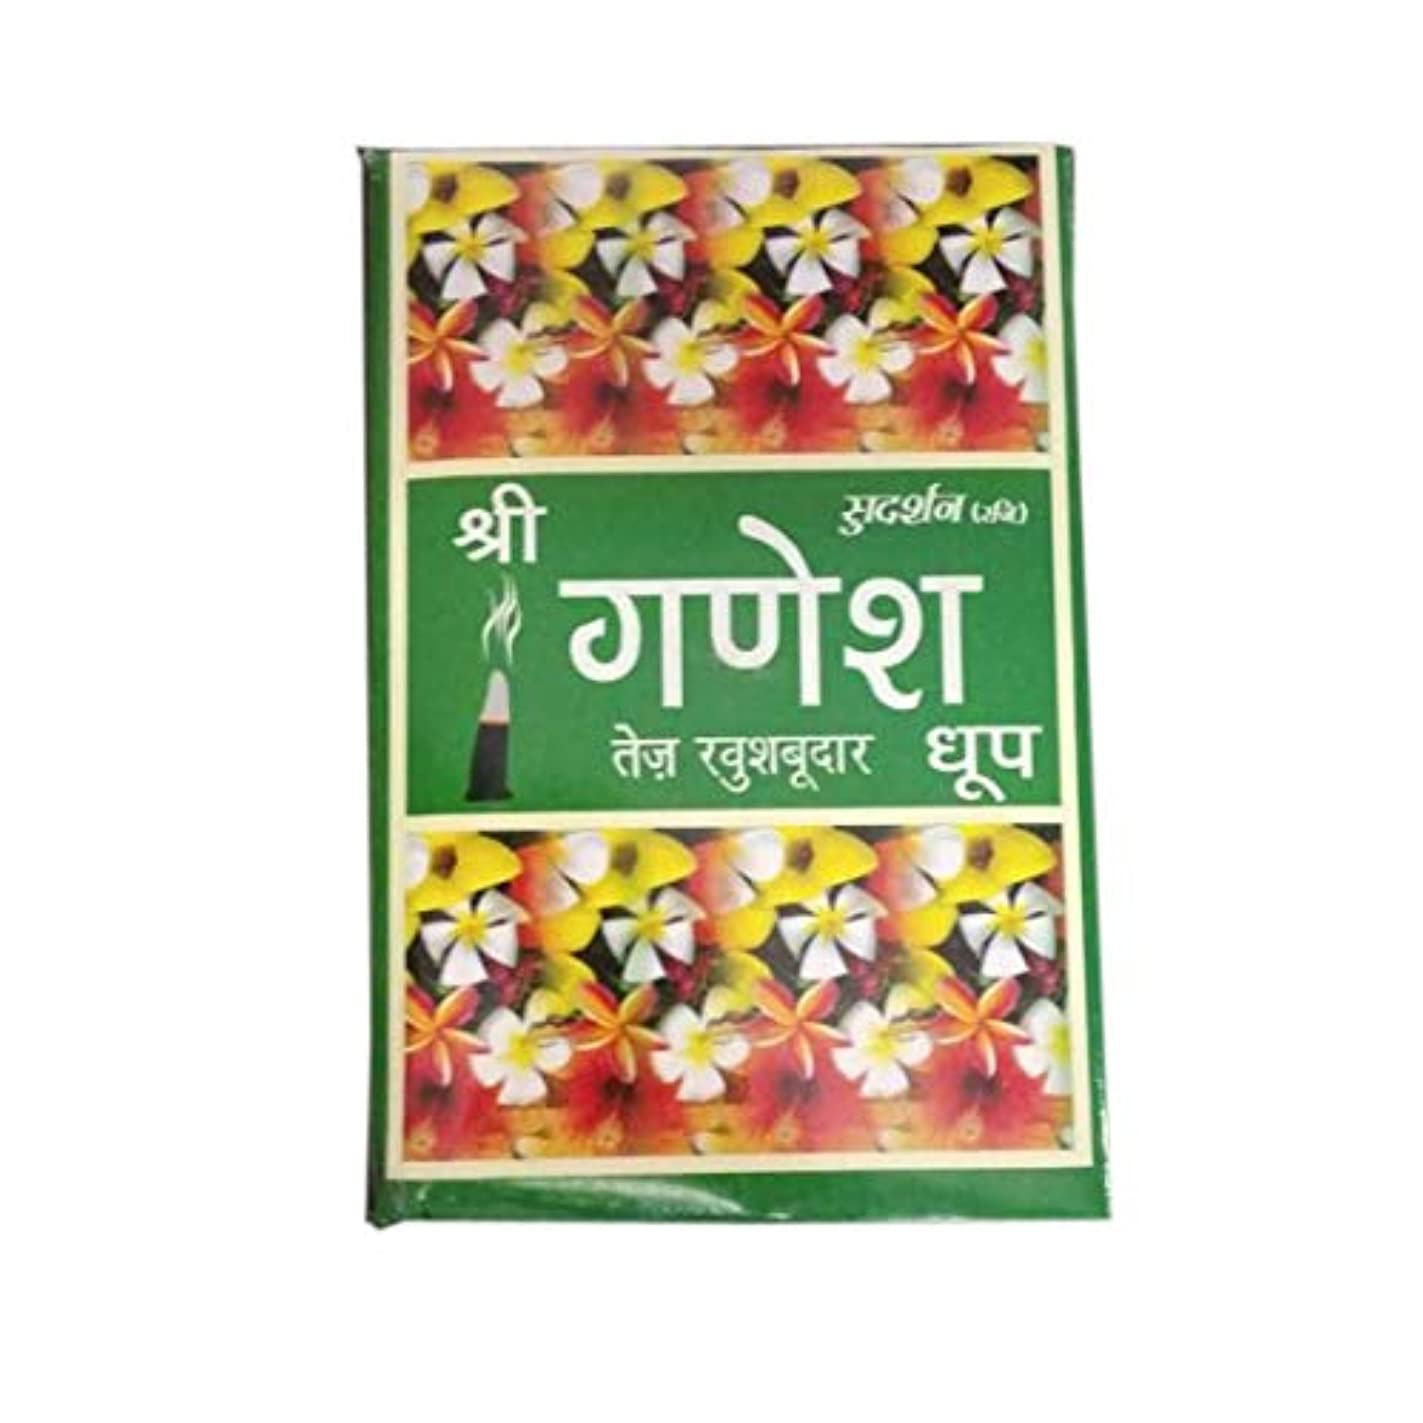 私の豆腐グローTotal Home :Sudarshan Shri Ganesh Highly Perfumed dhoop Fragrance for Positivity & Freshness Fragrance Dhoop Batti...